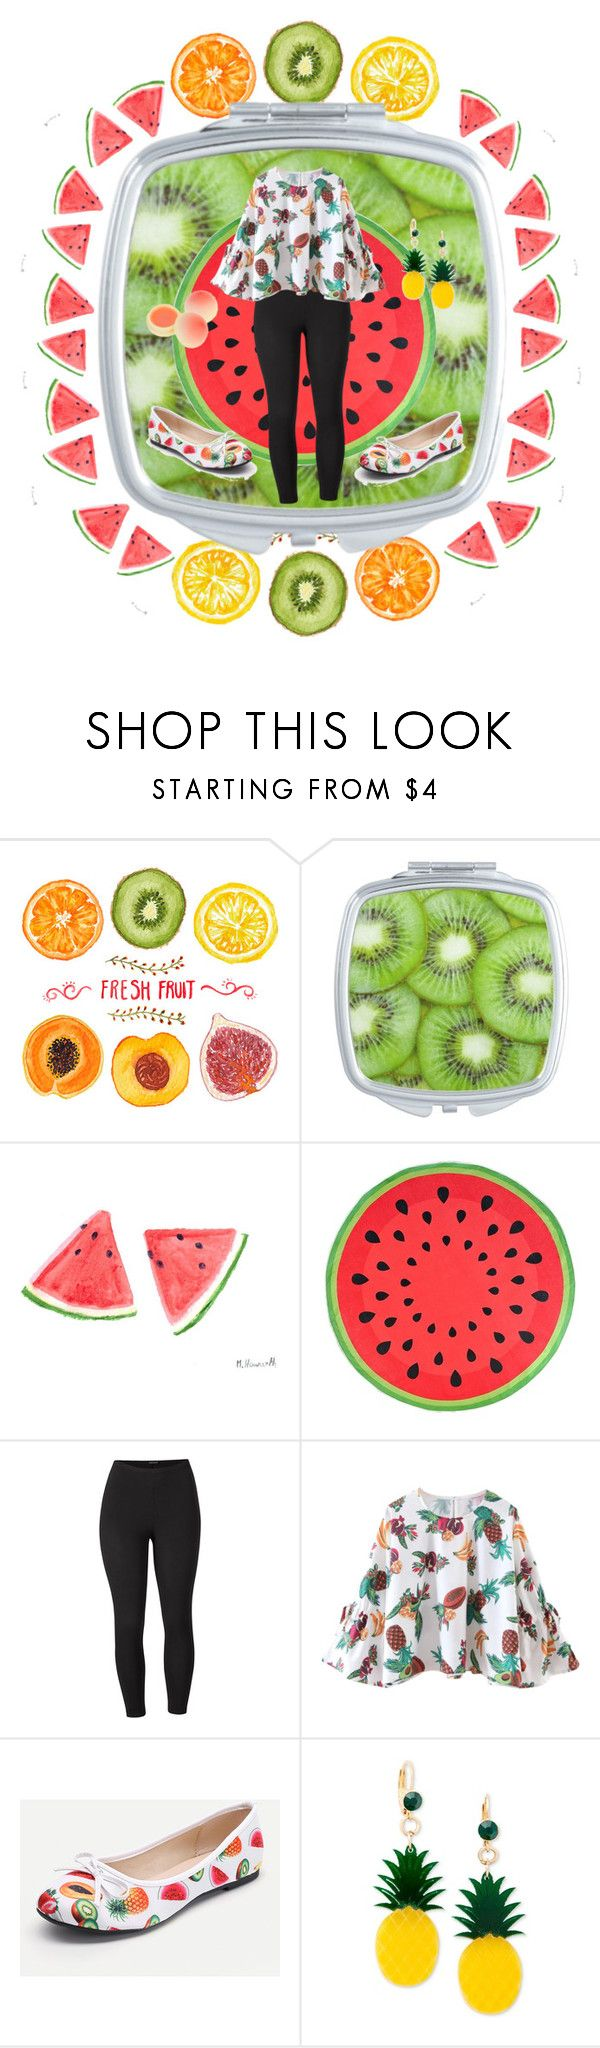 Luxury  Fruitastic by nichelle thompson liked on Polyvore featuring Venus Celebrate Shop